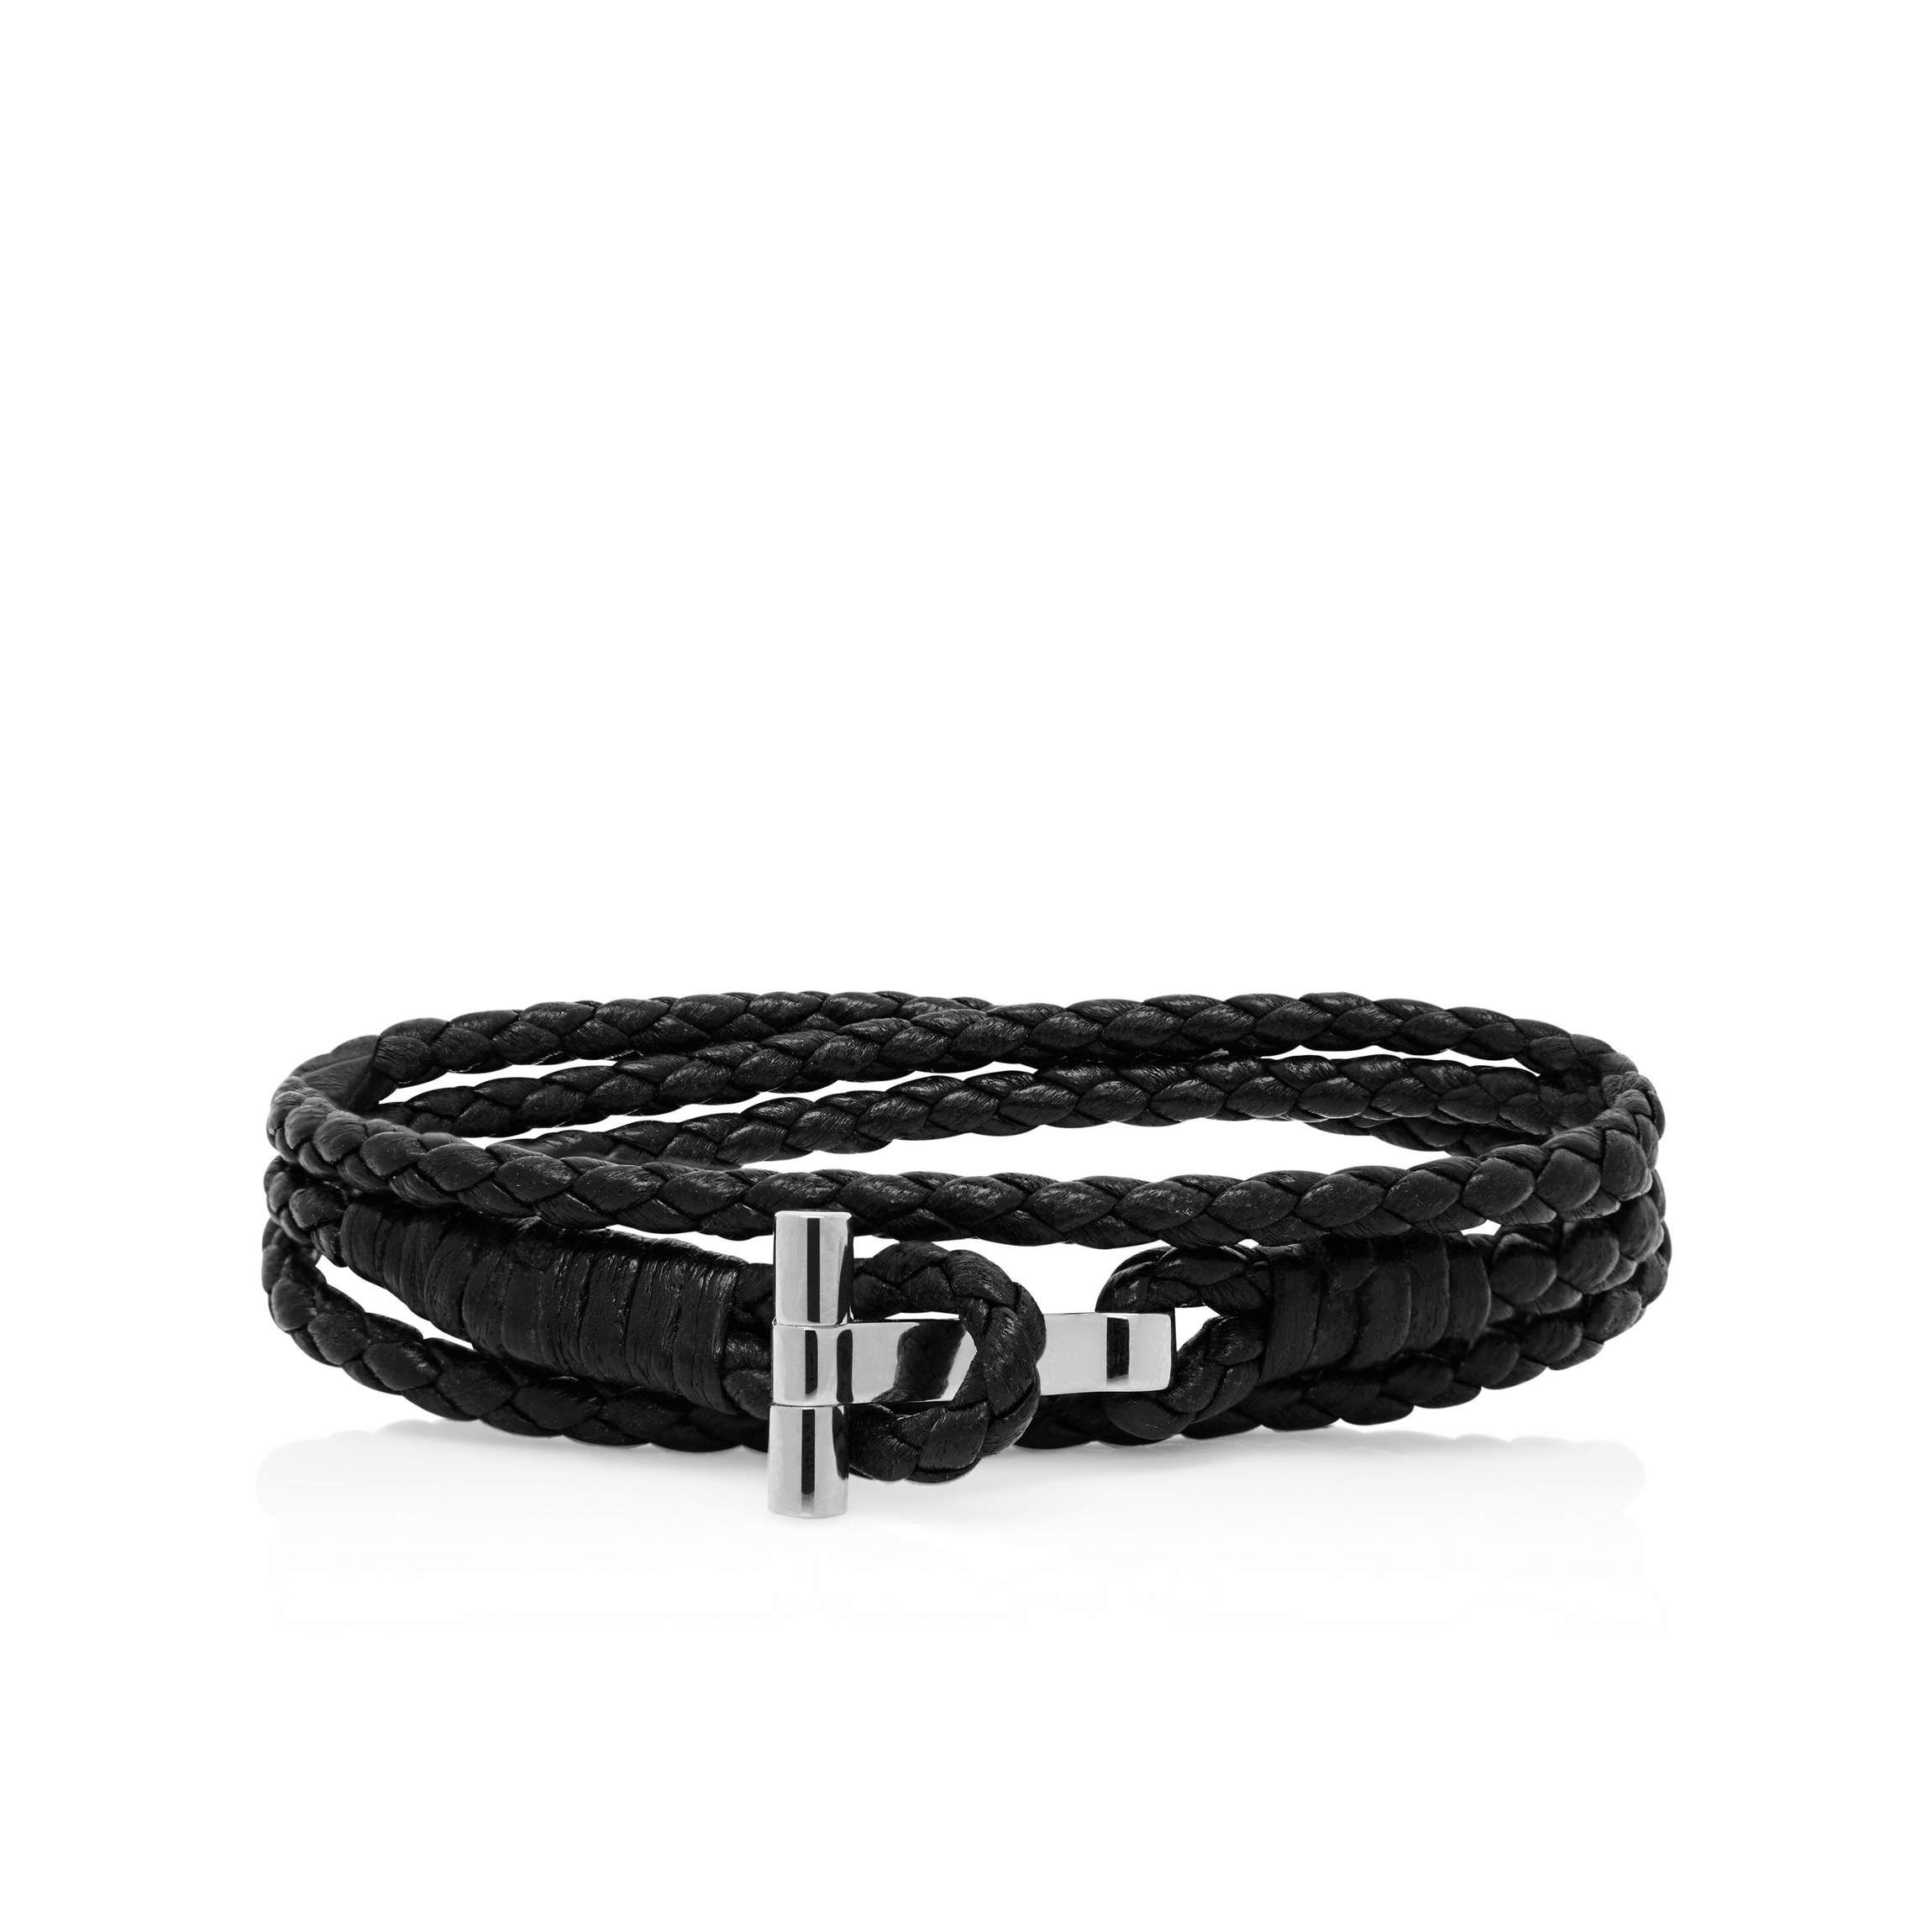 woven bracelets leather men korean fashion male really for bracelet acbdcceeb